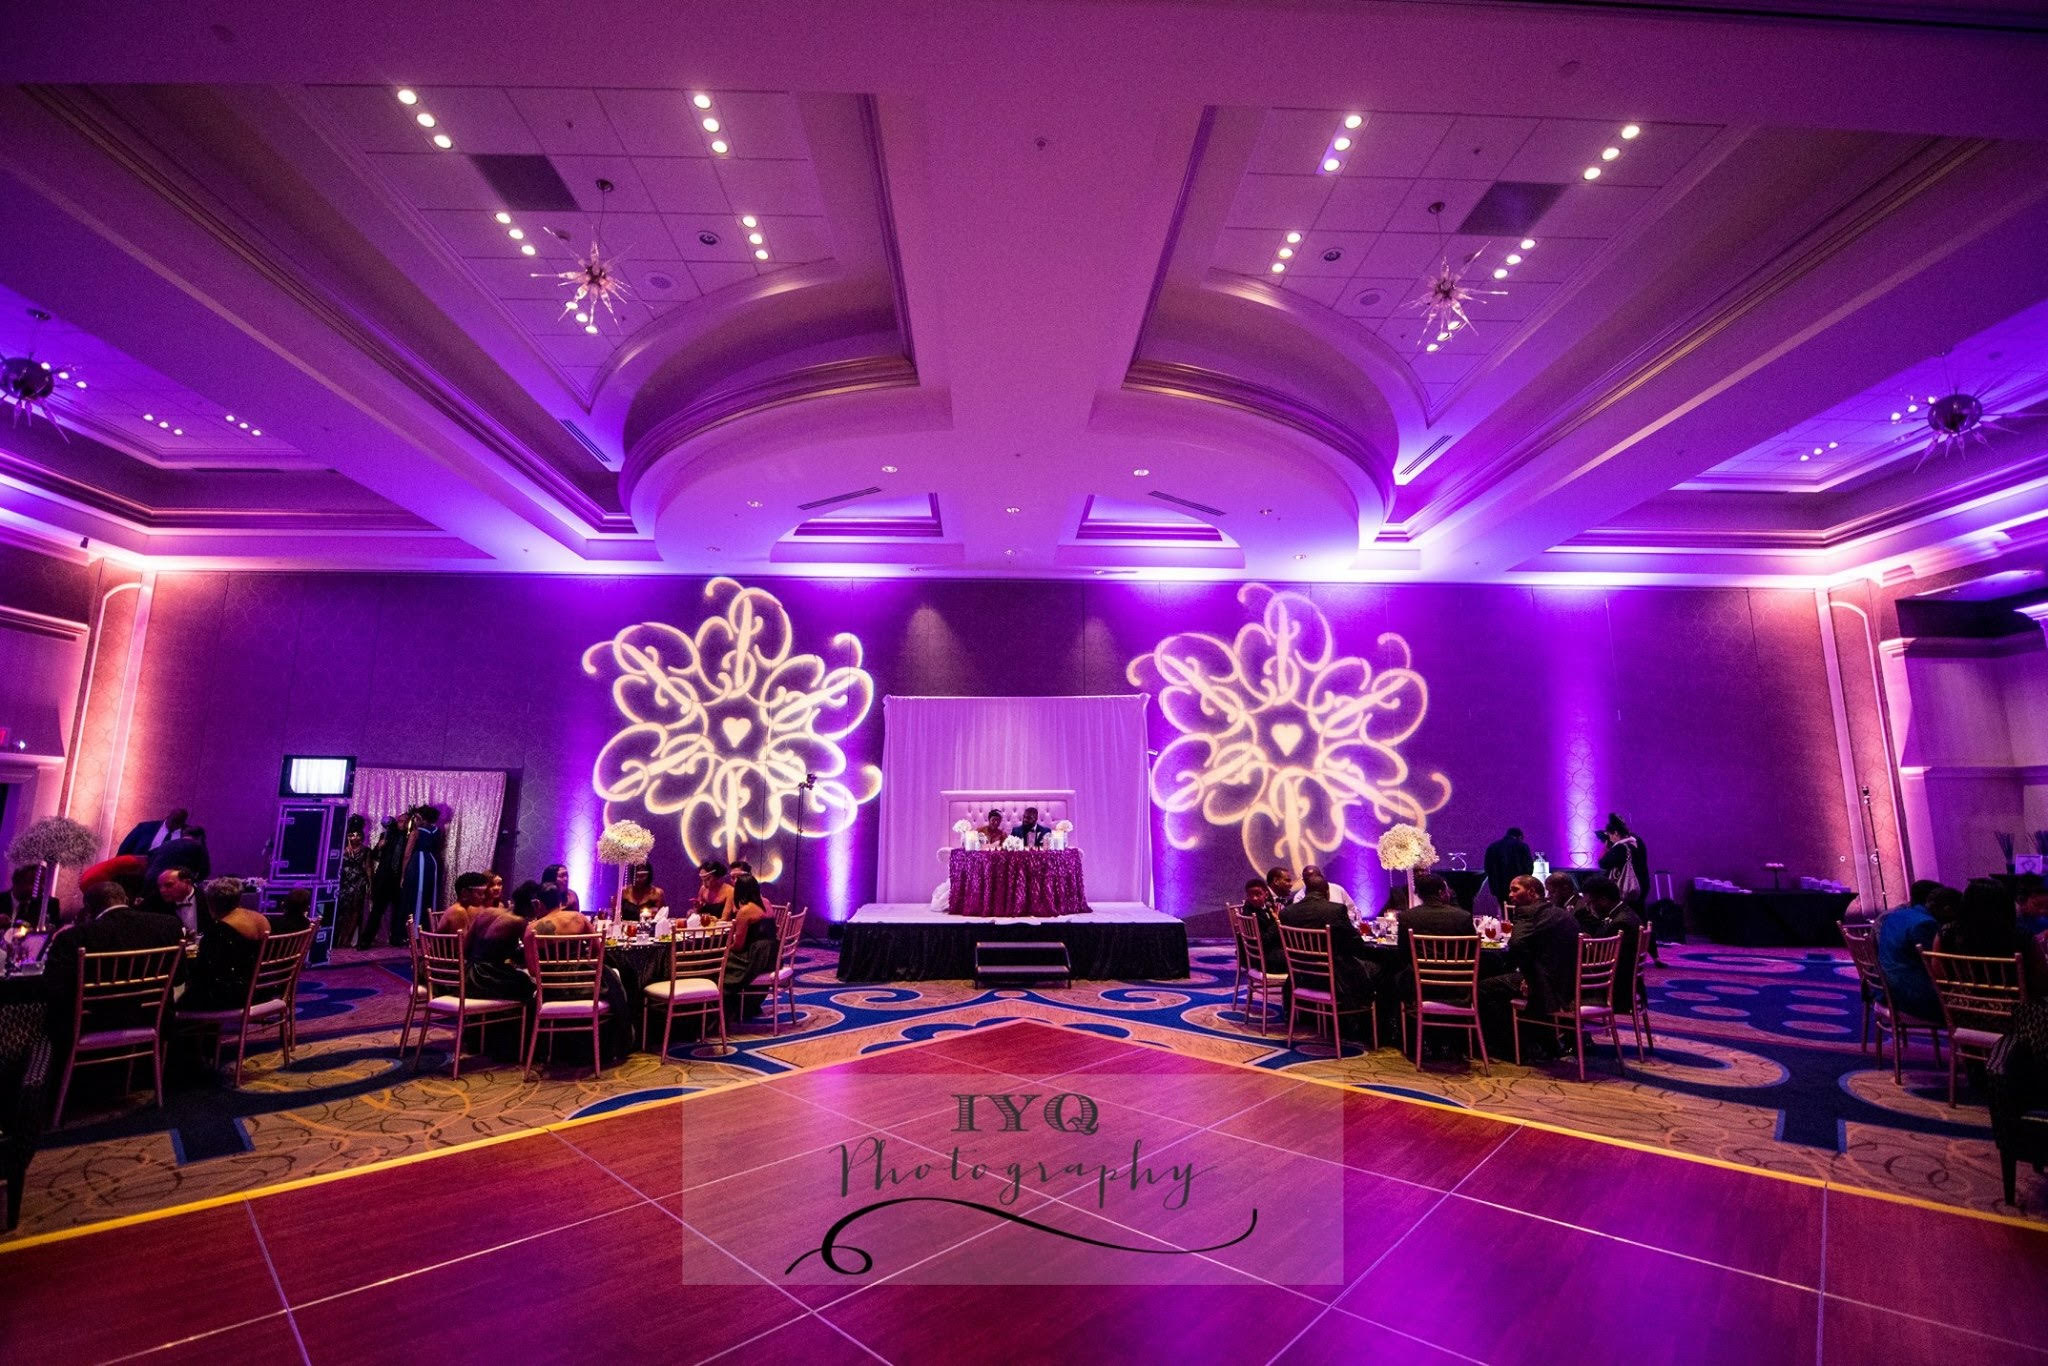 Dylan adams author at the lighting sound company page 2 of 3 wedding uplighting hilton virginia best thecheapjerseys Image collections